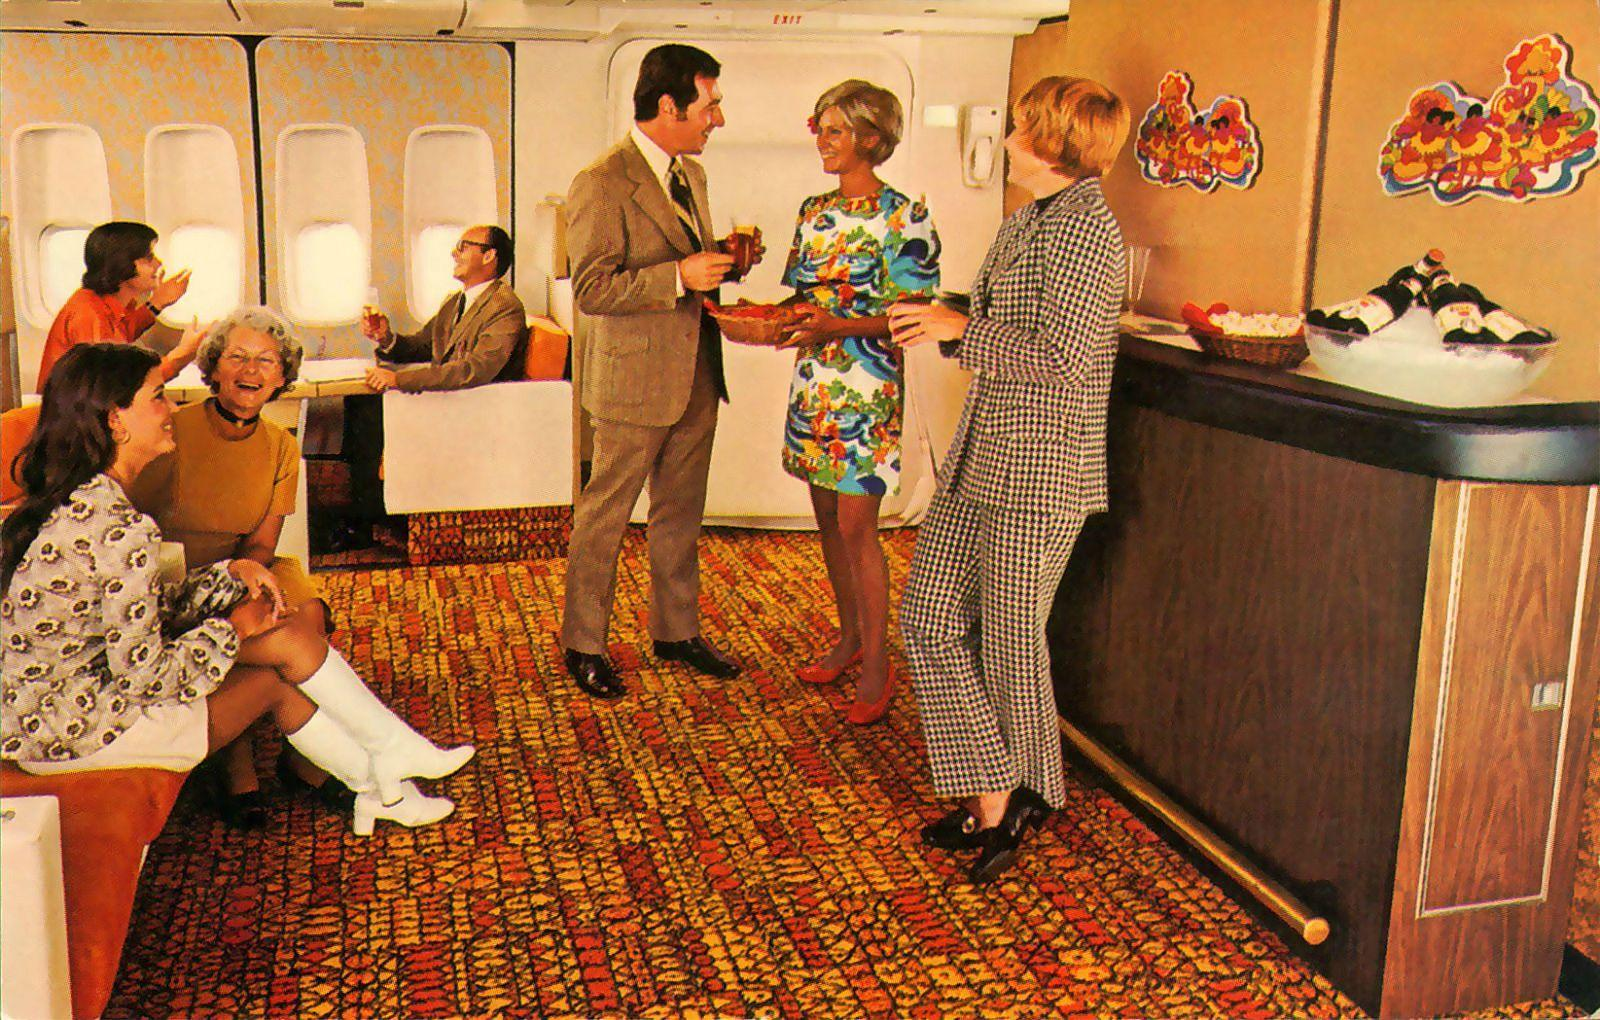 The inside of a 747 jumbo jet in the 70's http://t.co/9jf8nyJYdg